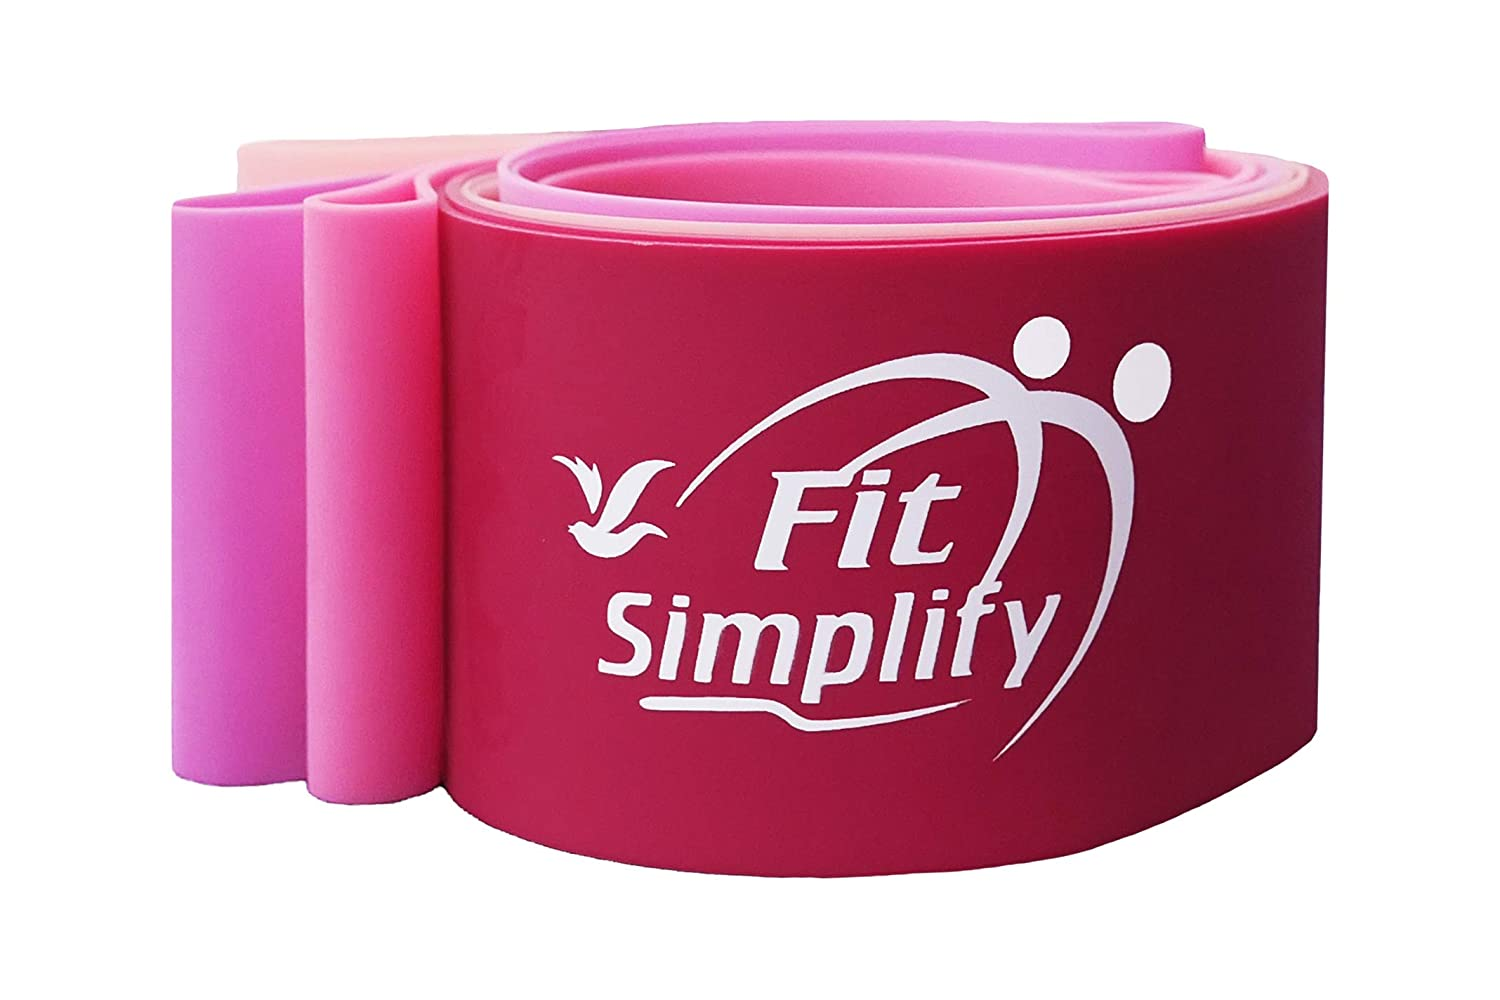 Resistance Exercise Bands Carry Bag Set of 4 Booty Bands with Instruction Guide Fit Simplify Resistance Loop Bands Pink Series Ebook and Online Workout Videos